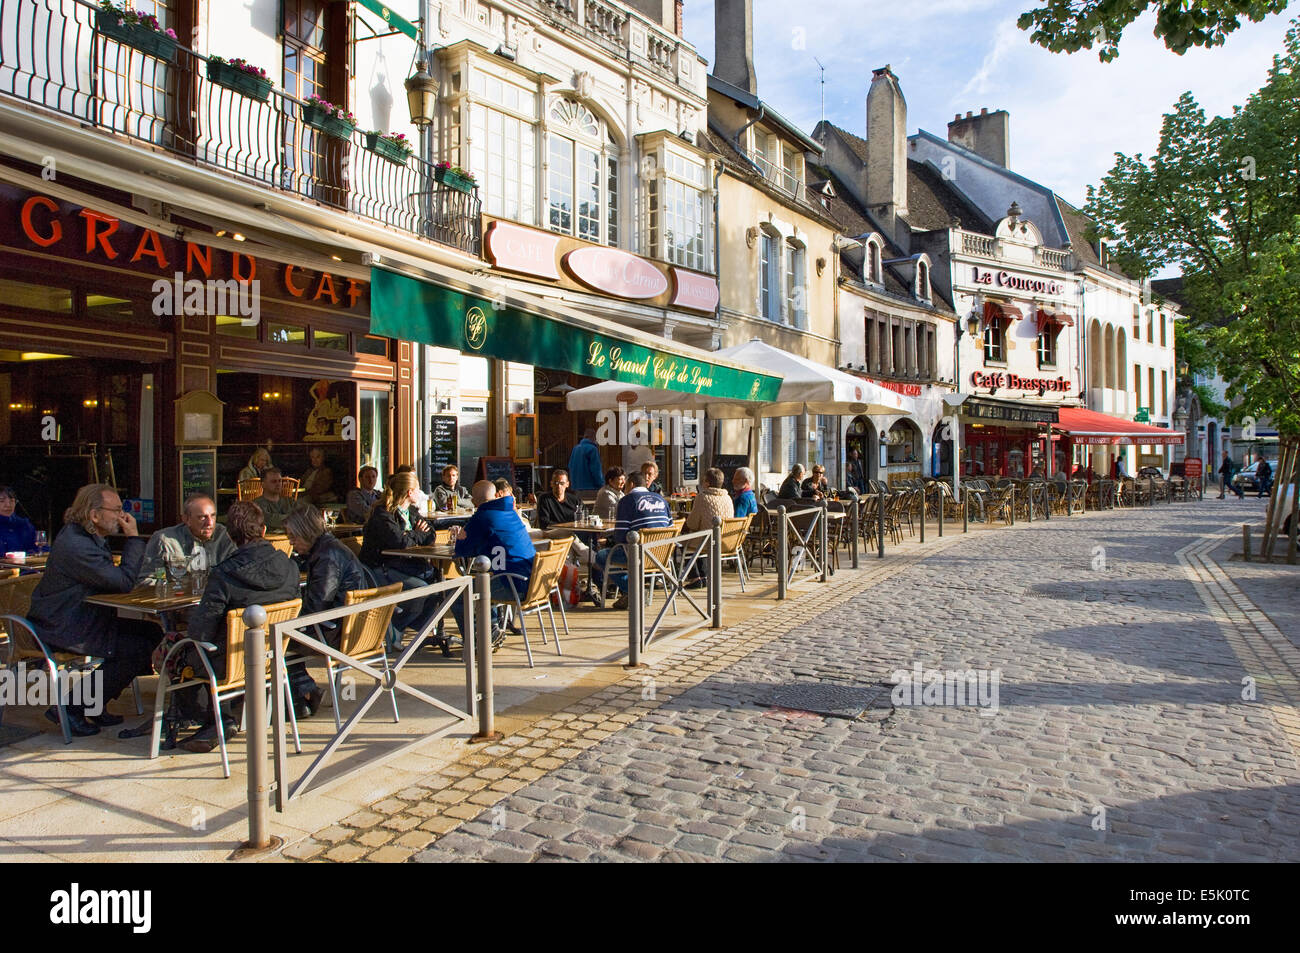 Late afternoon street café scene in Beaune, Burgundy, with typical European building and cafés lining - Stock Image